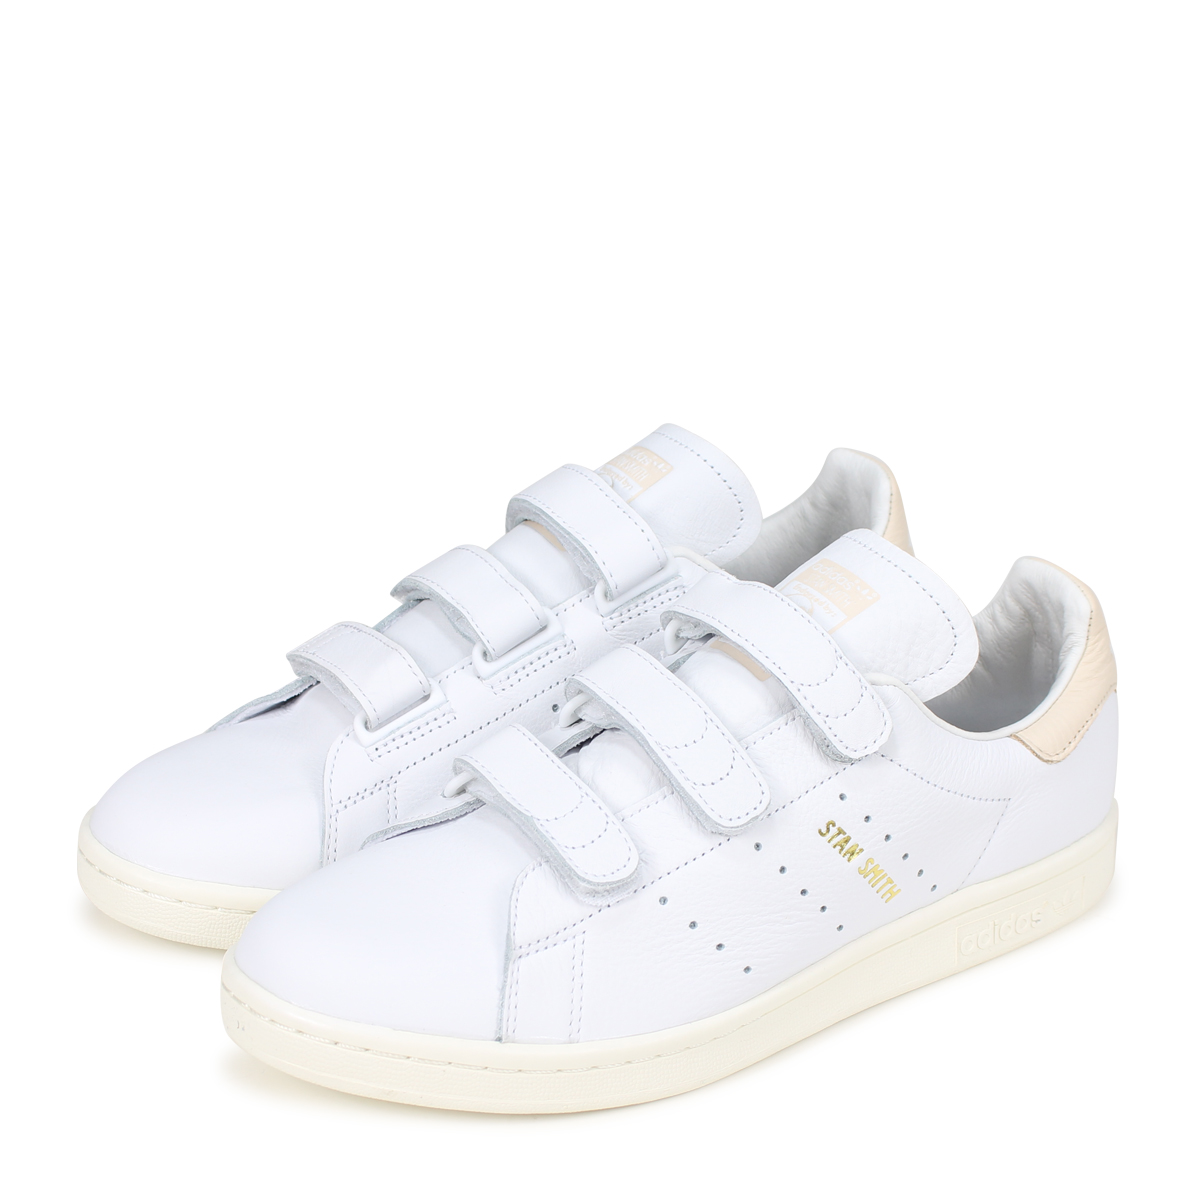 free shipping f0402 d9ce5 adidas Originals STAN SMITH CF Adidas originals Stan Smith sneakers men gap  Dis F36573 white  load planned Shinnyu load in reservation product 8 14 ...